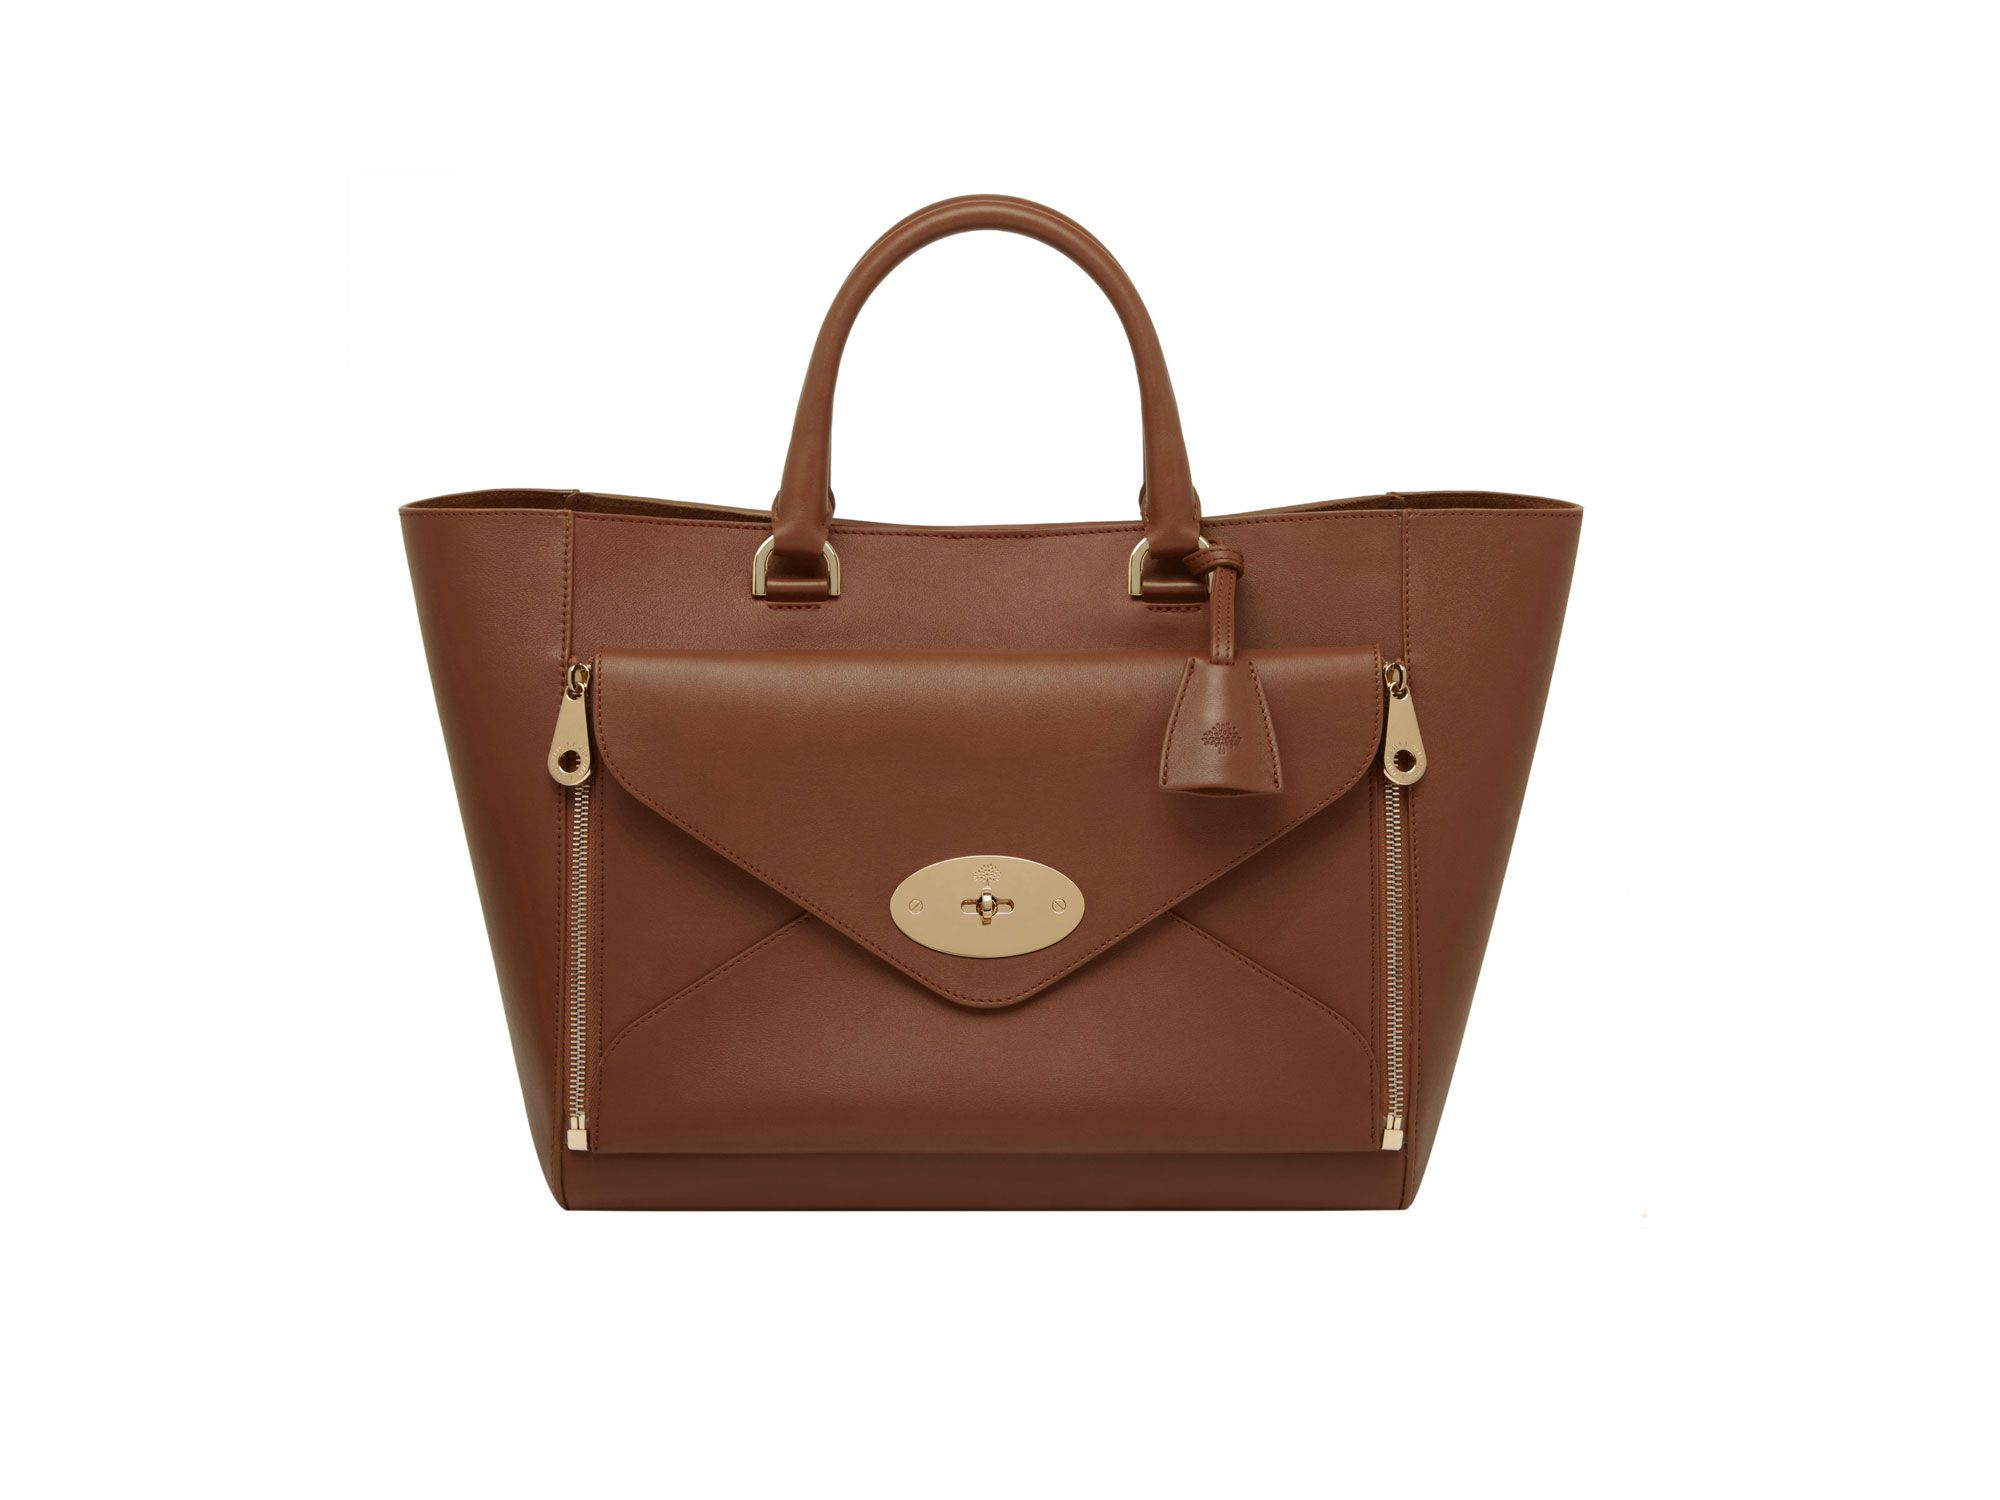 df48c9bd4a5 Carry It All - Mulberry bag,  2700, at Mulberry, New York, 646.669.8380.